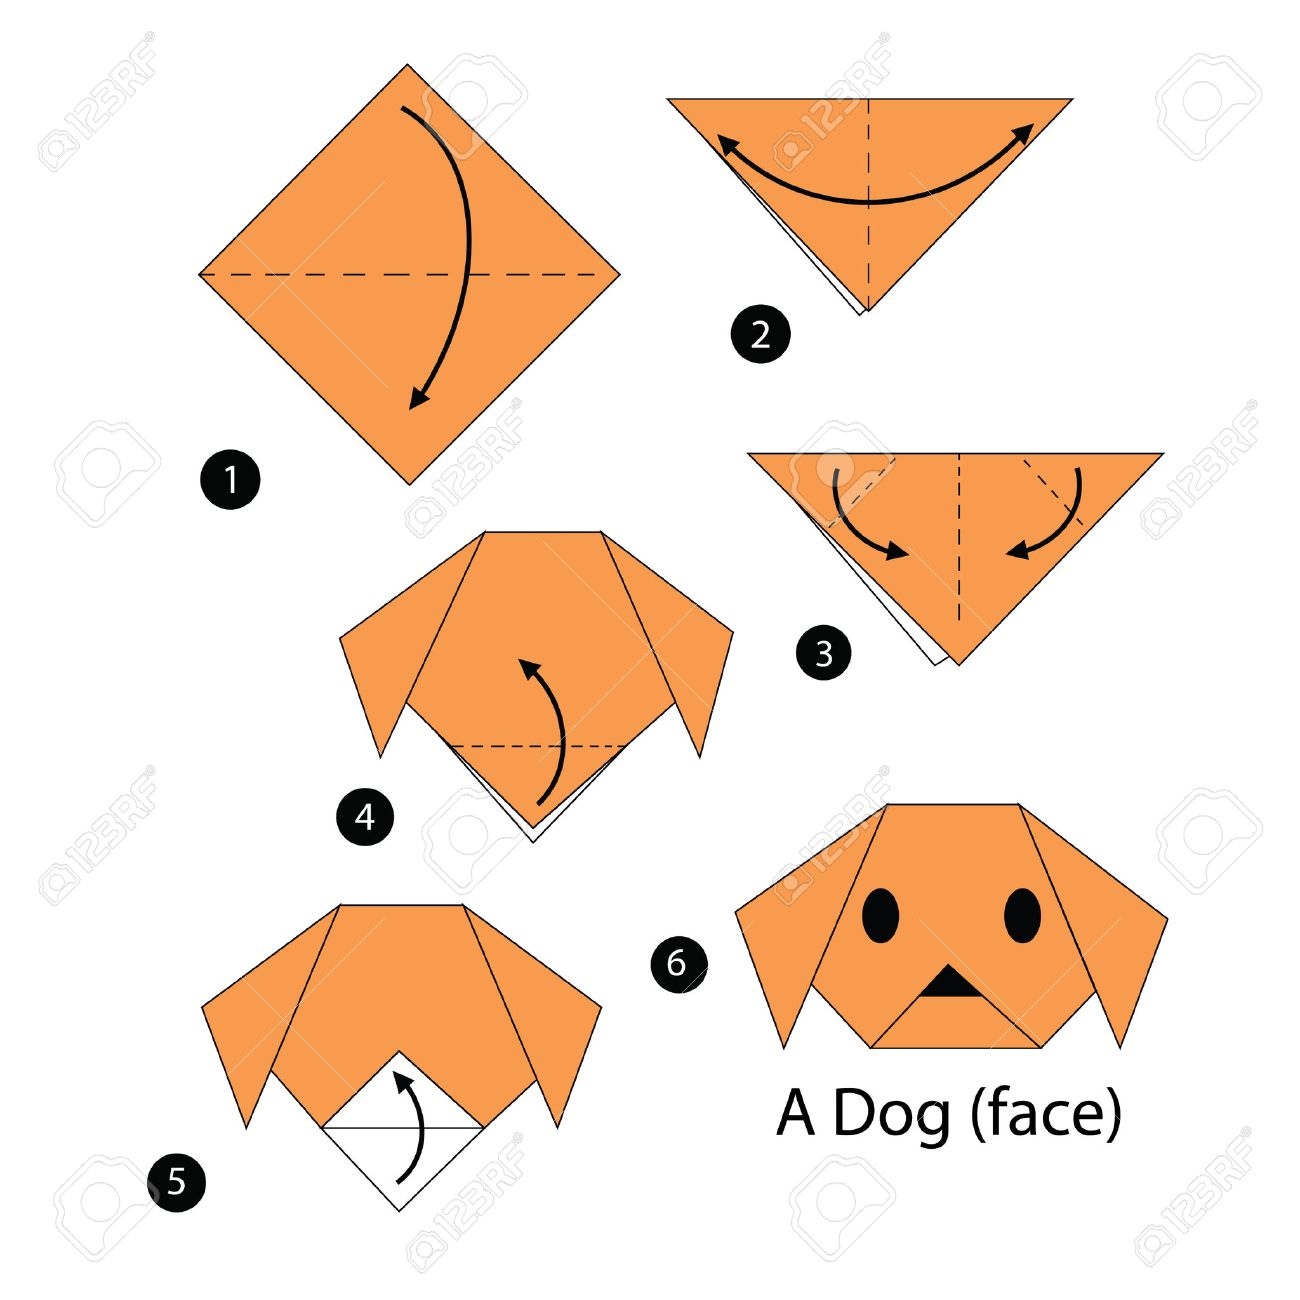 Step by step instructions how to make origami dog royalty free step by step instructions how to make origami dog stock vector 46230741 jeuxipadfo Image collections